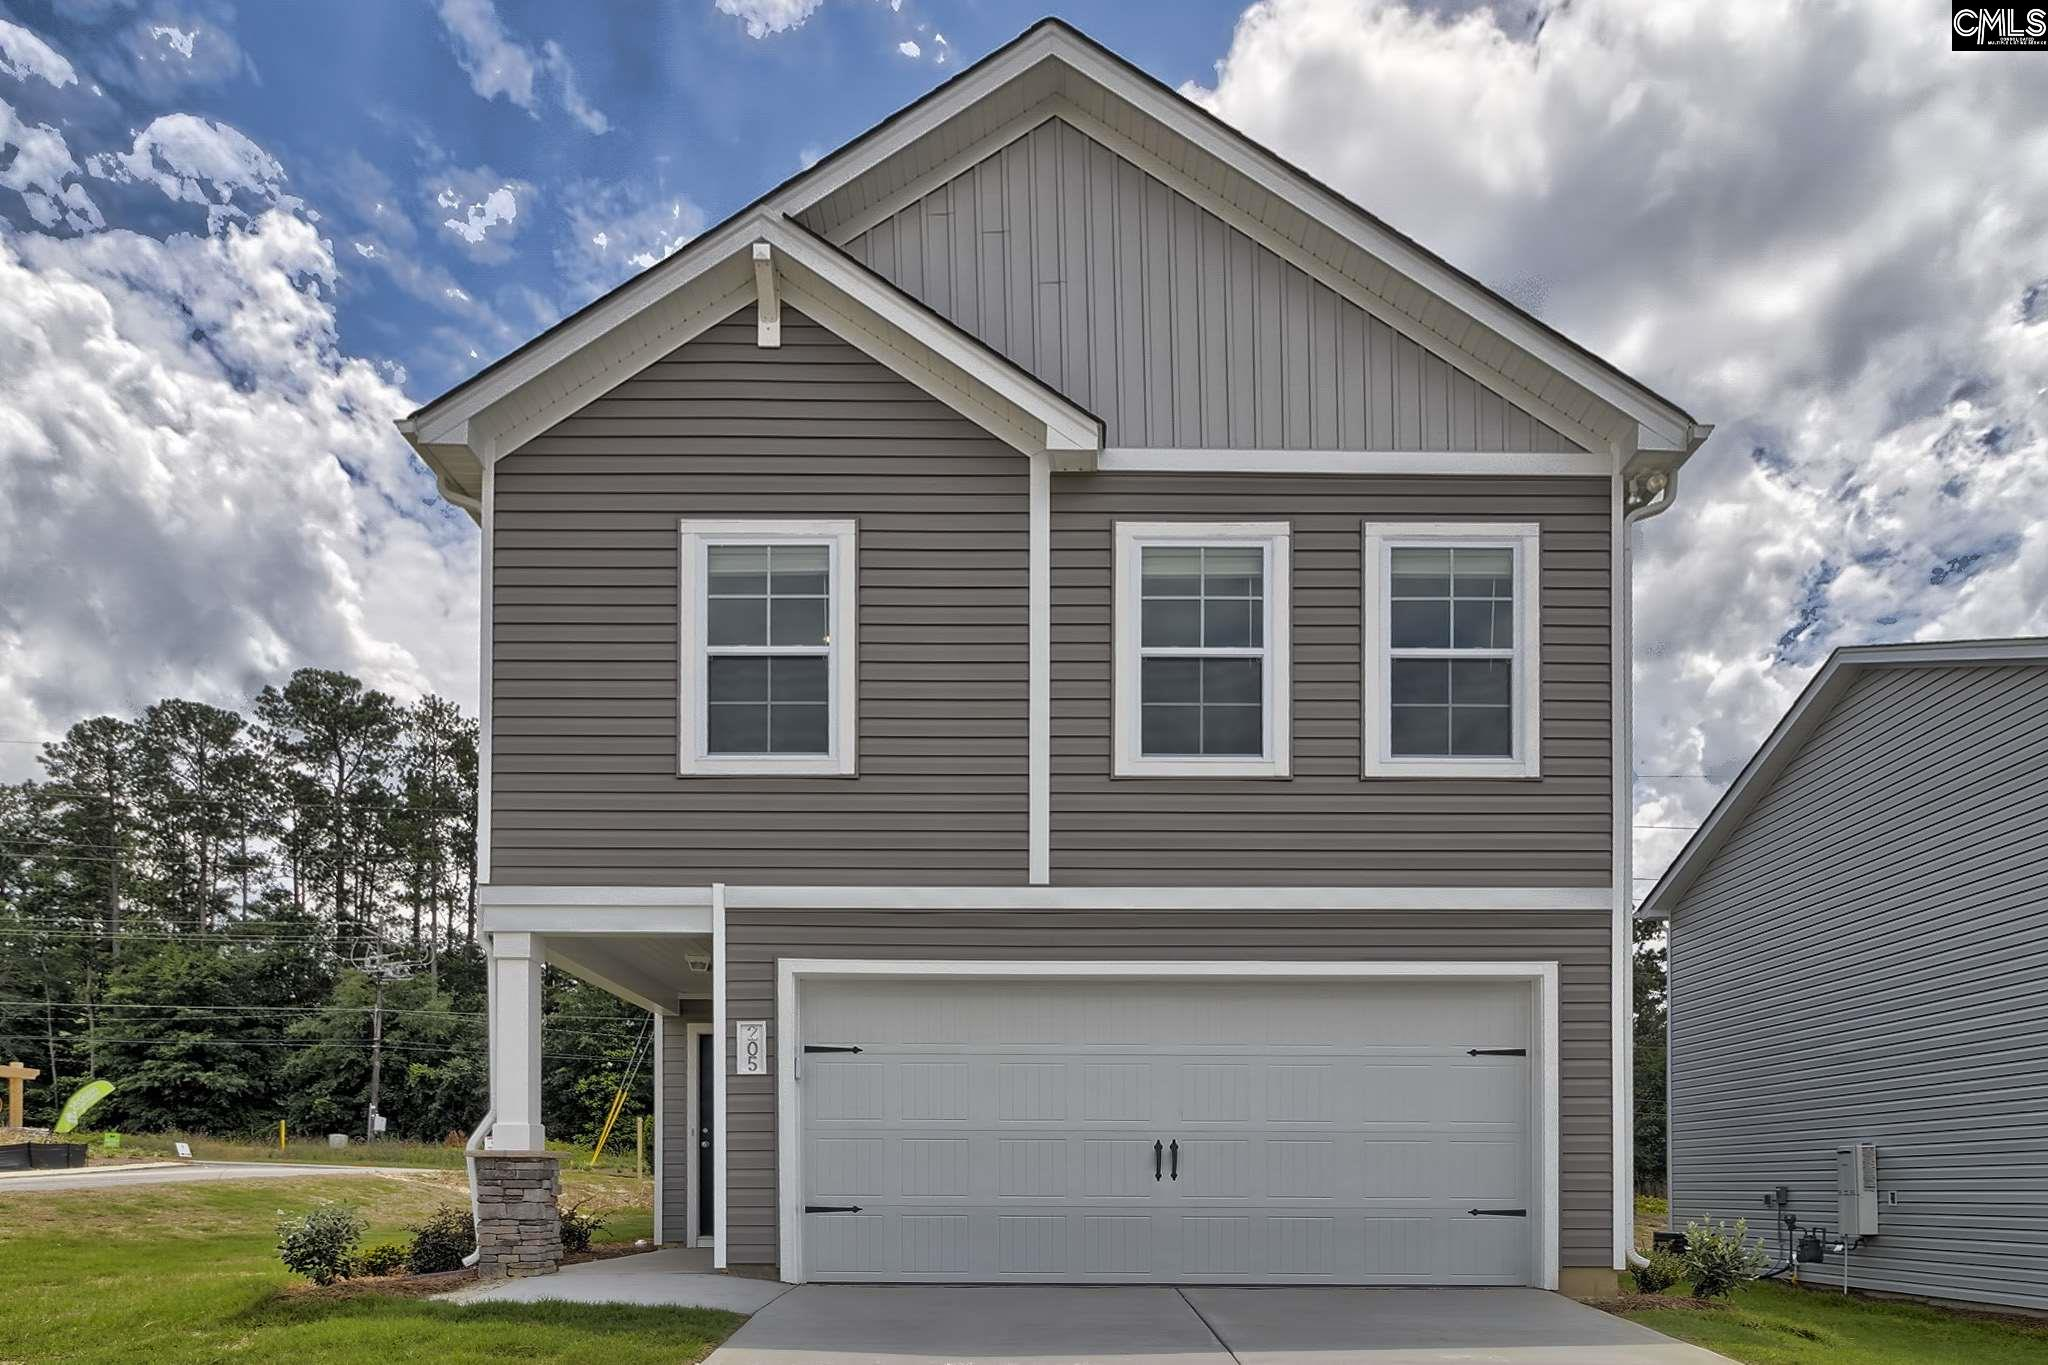 337 Liliana Columbia, SC 29223